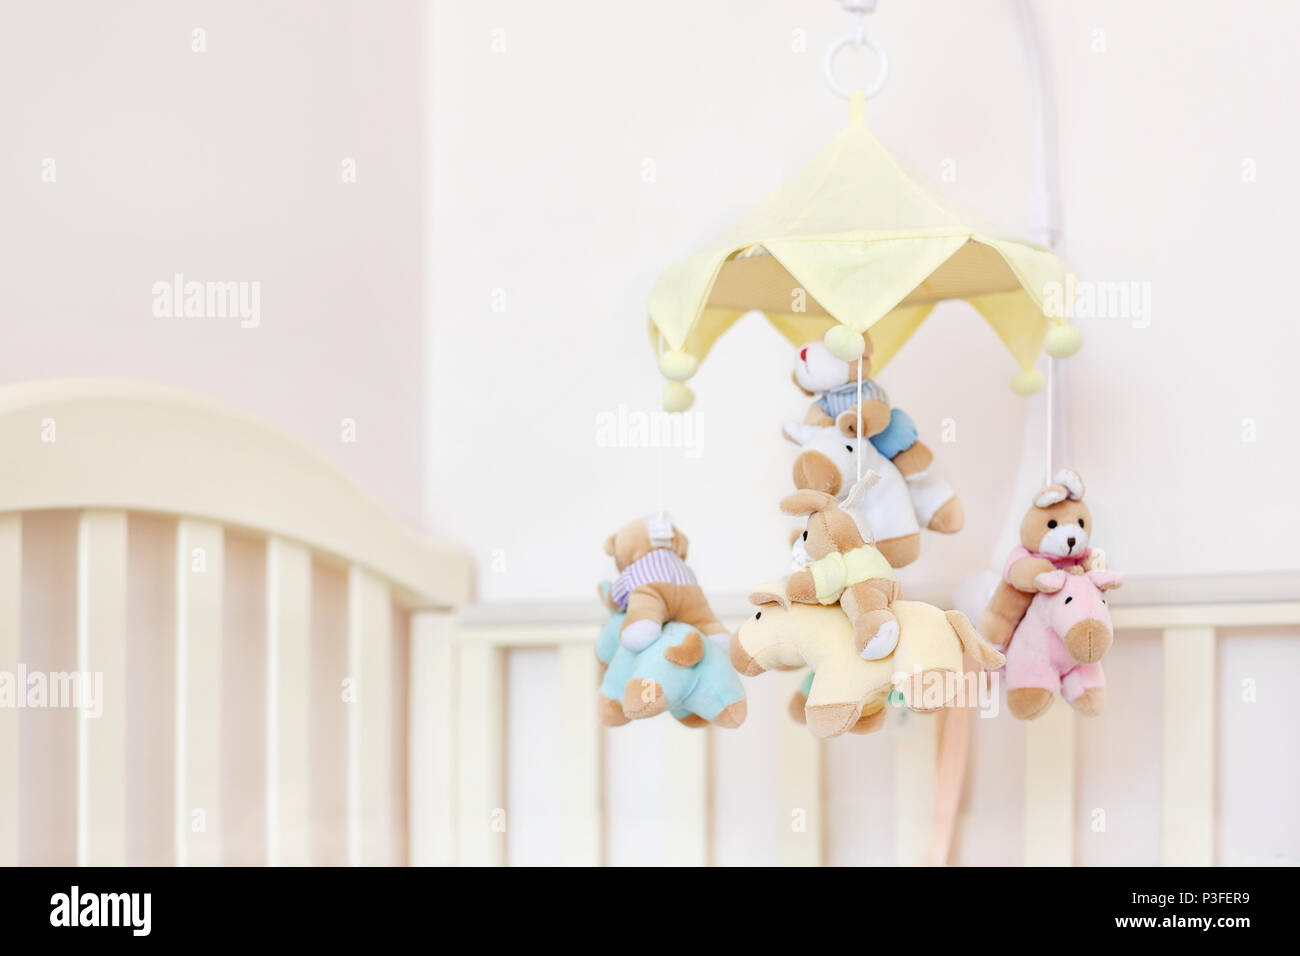 Close-up baby crib with musical animal mobile at nursery room. Hanged developing toy with plush fluffy animals. Happy parenting and childhood, expecta - Stock Image